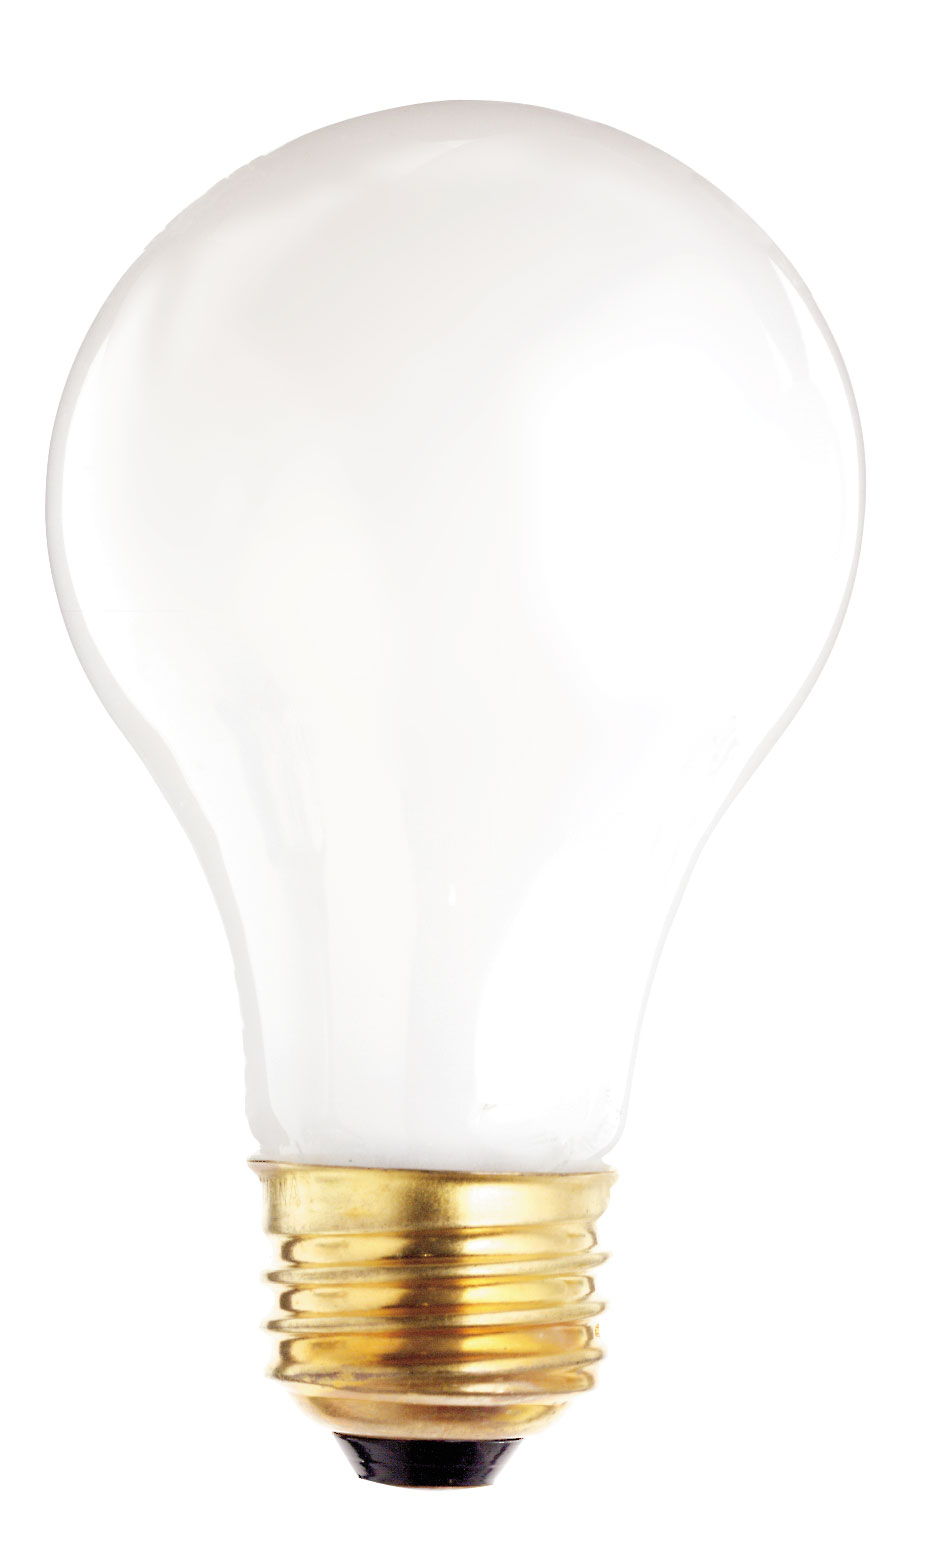 Straight Tip Chandelier Incandescent Light Bulbs